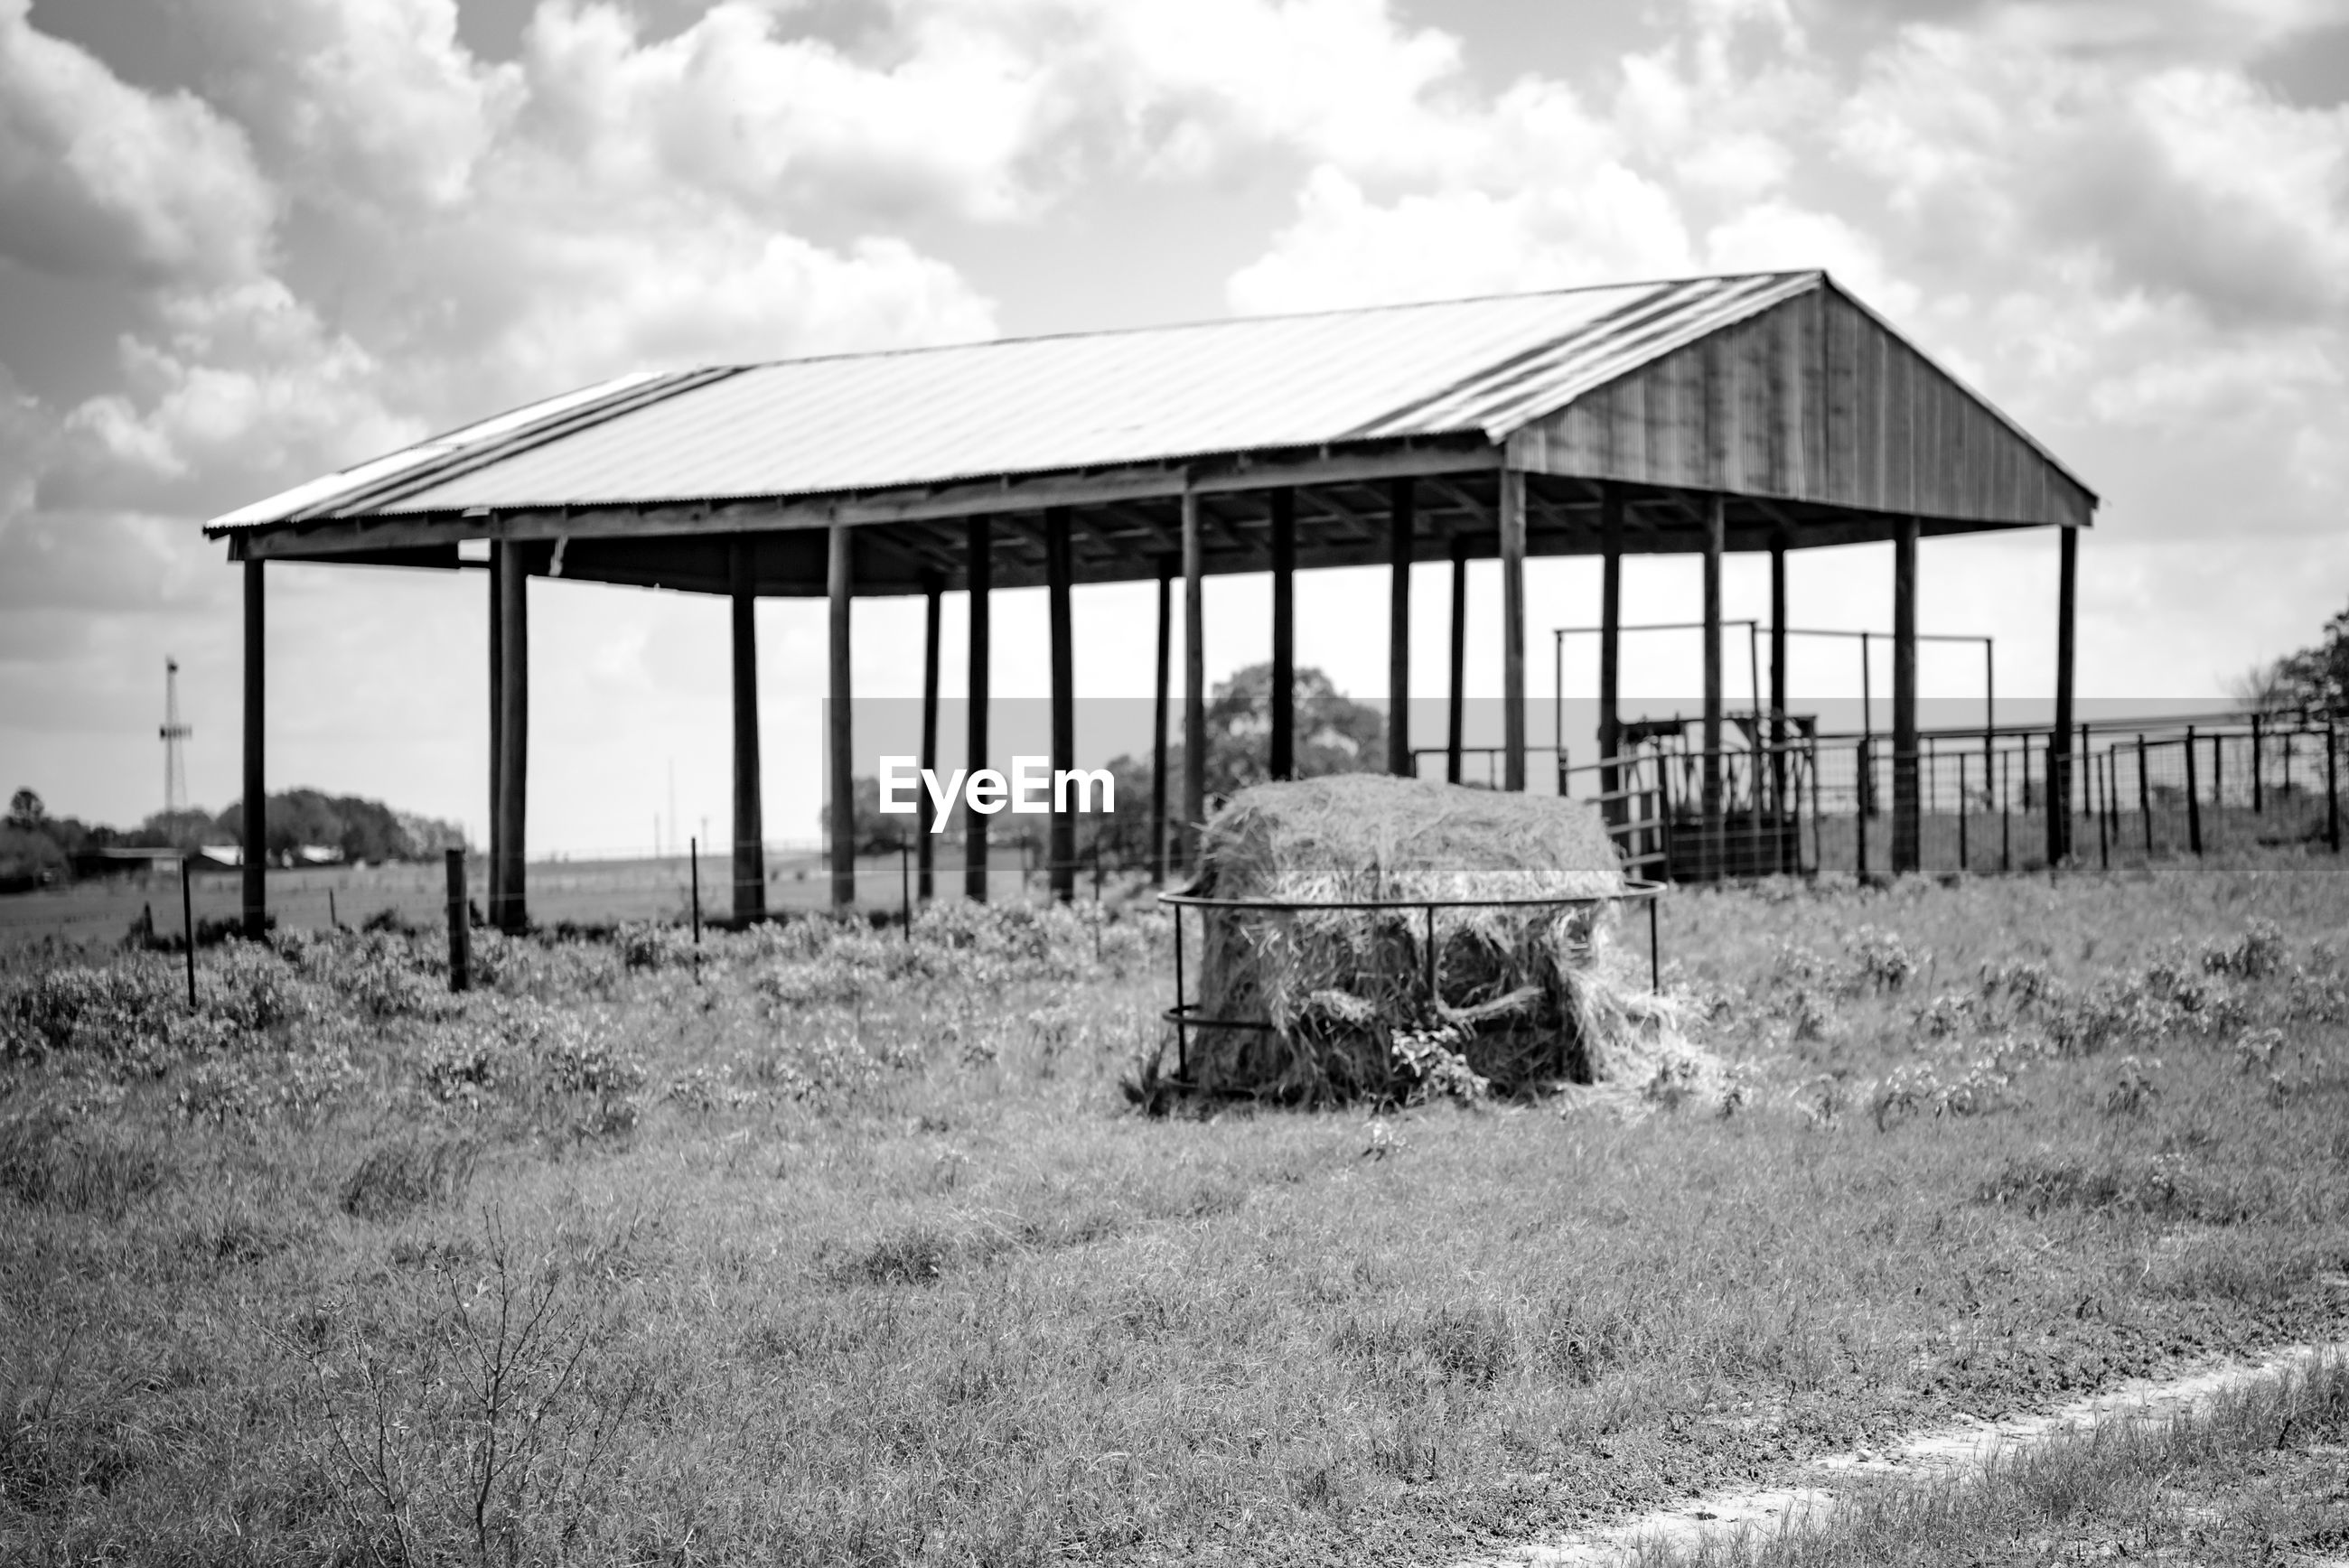 VIEW OF BARN ON FIELD AGAINST SKY